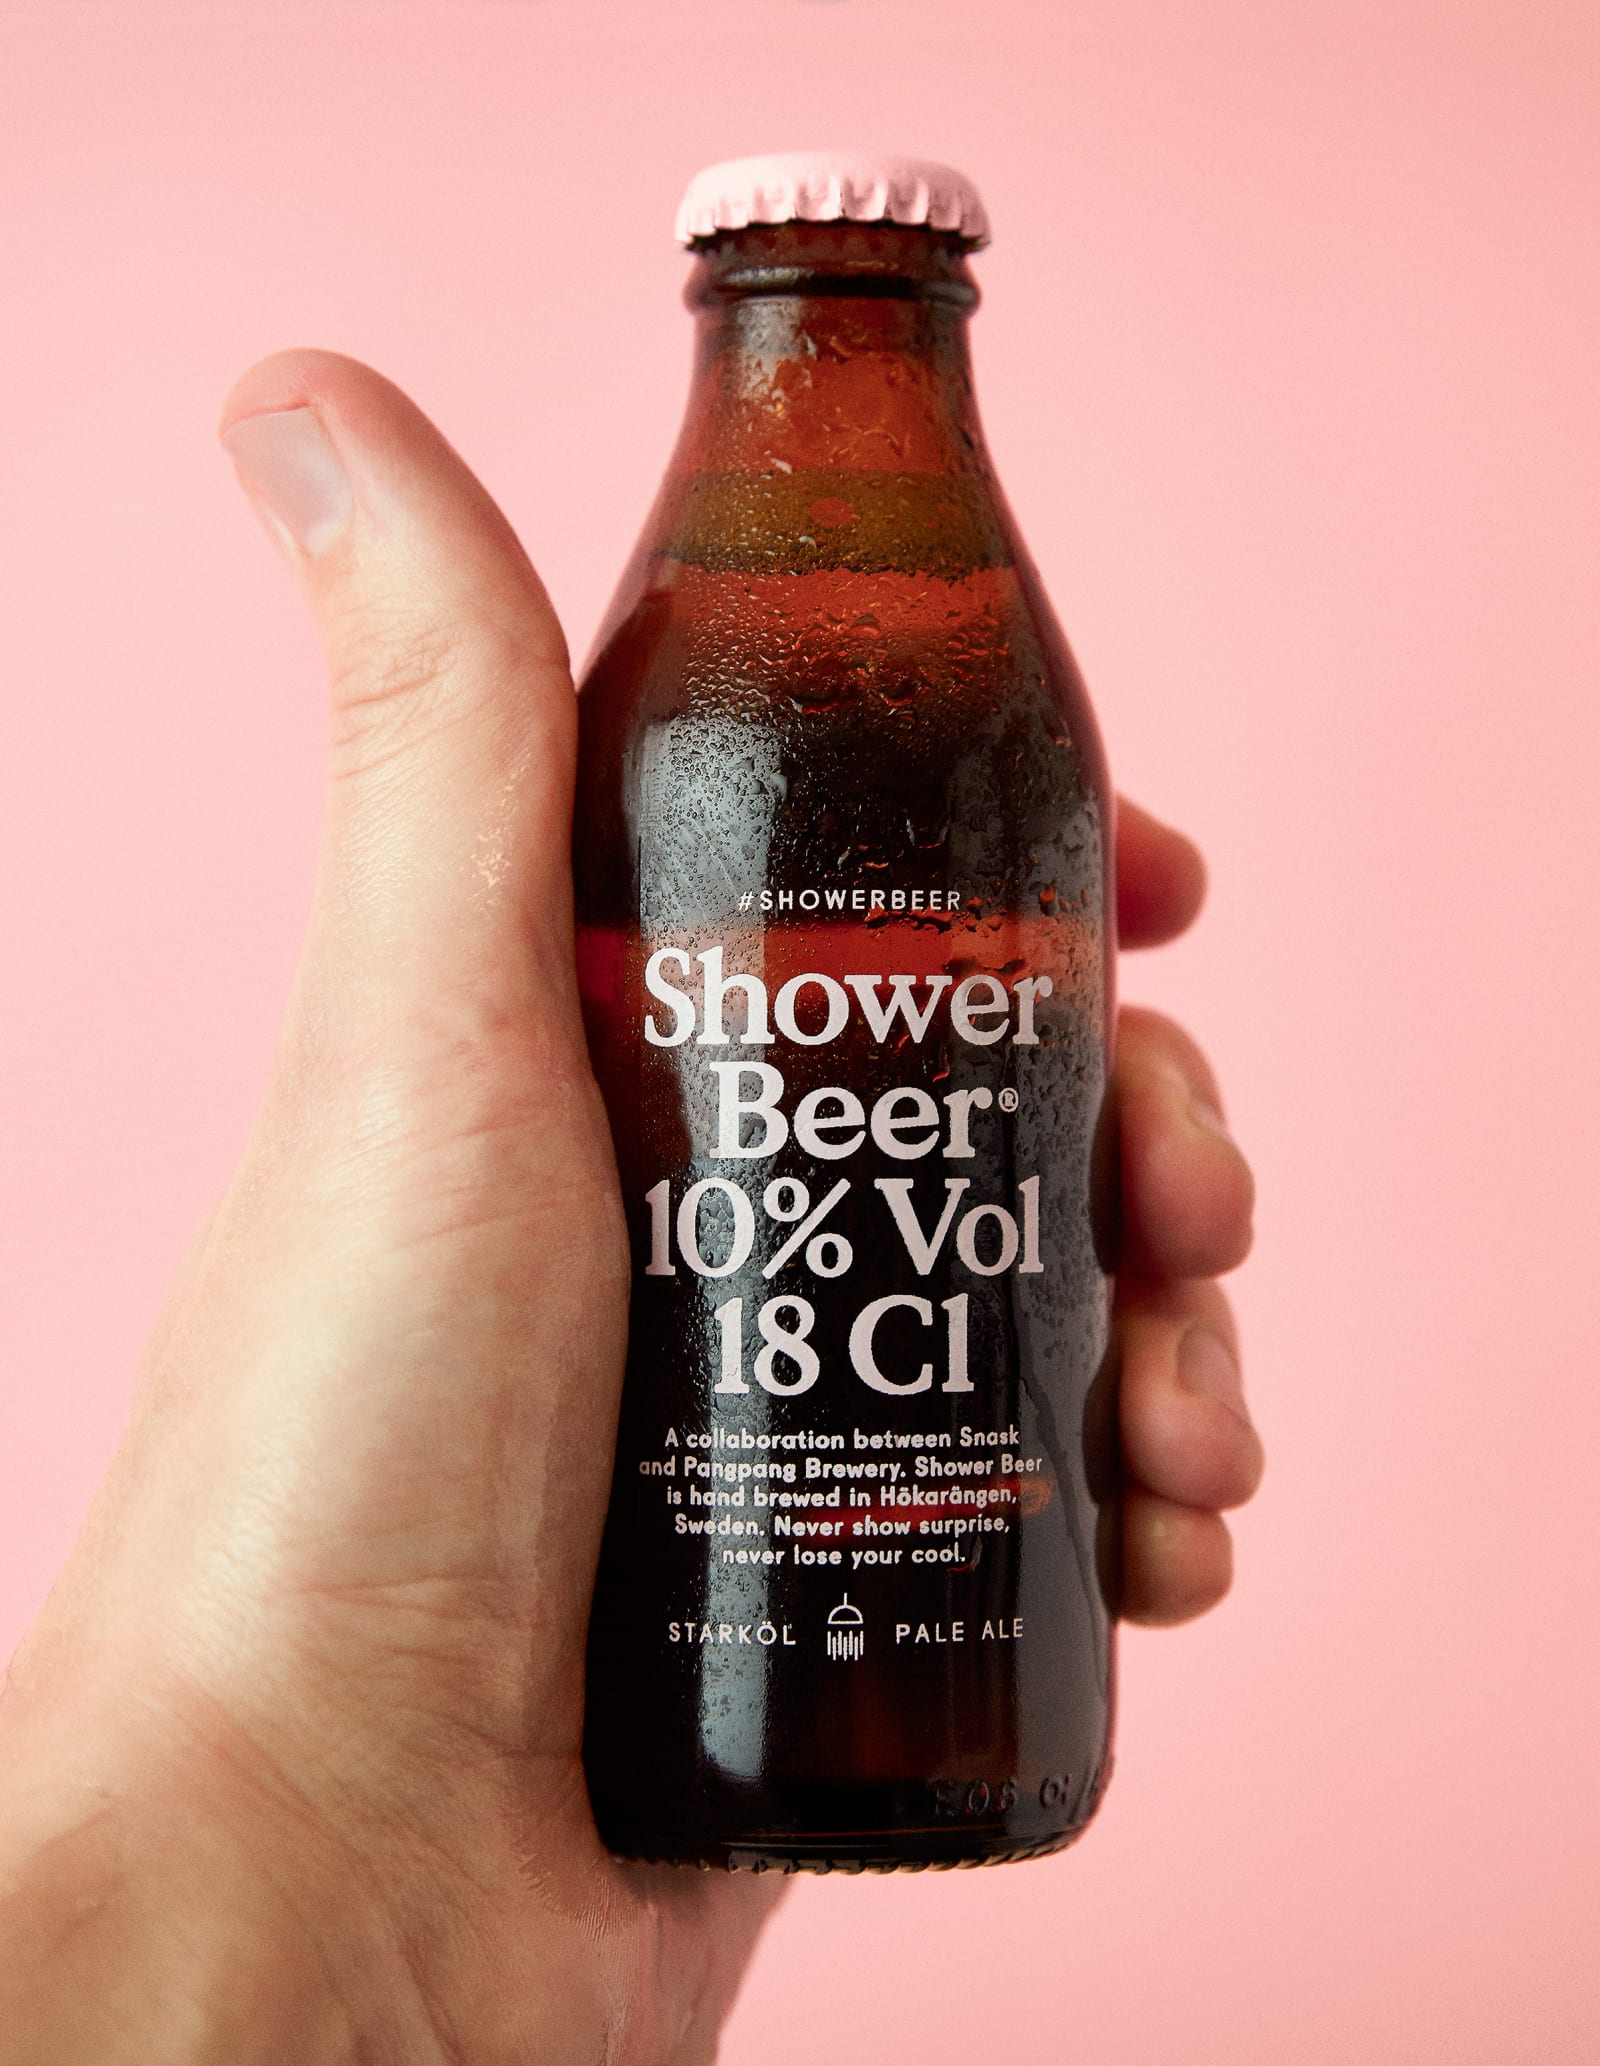 SHOWER BEER — Beer packaging design for a 18 cl small bottle meant to gulp in three sips while standing in the shower